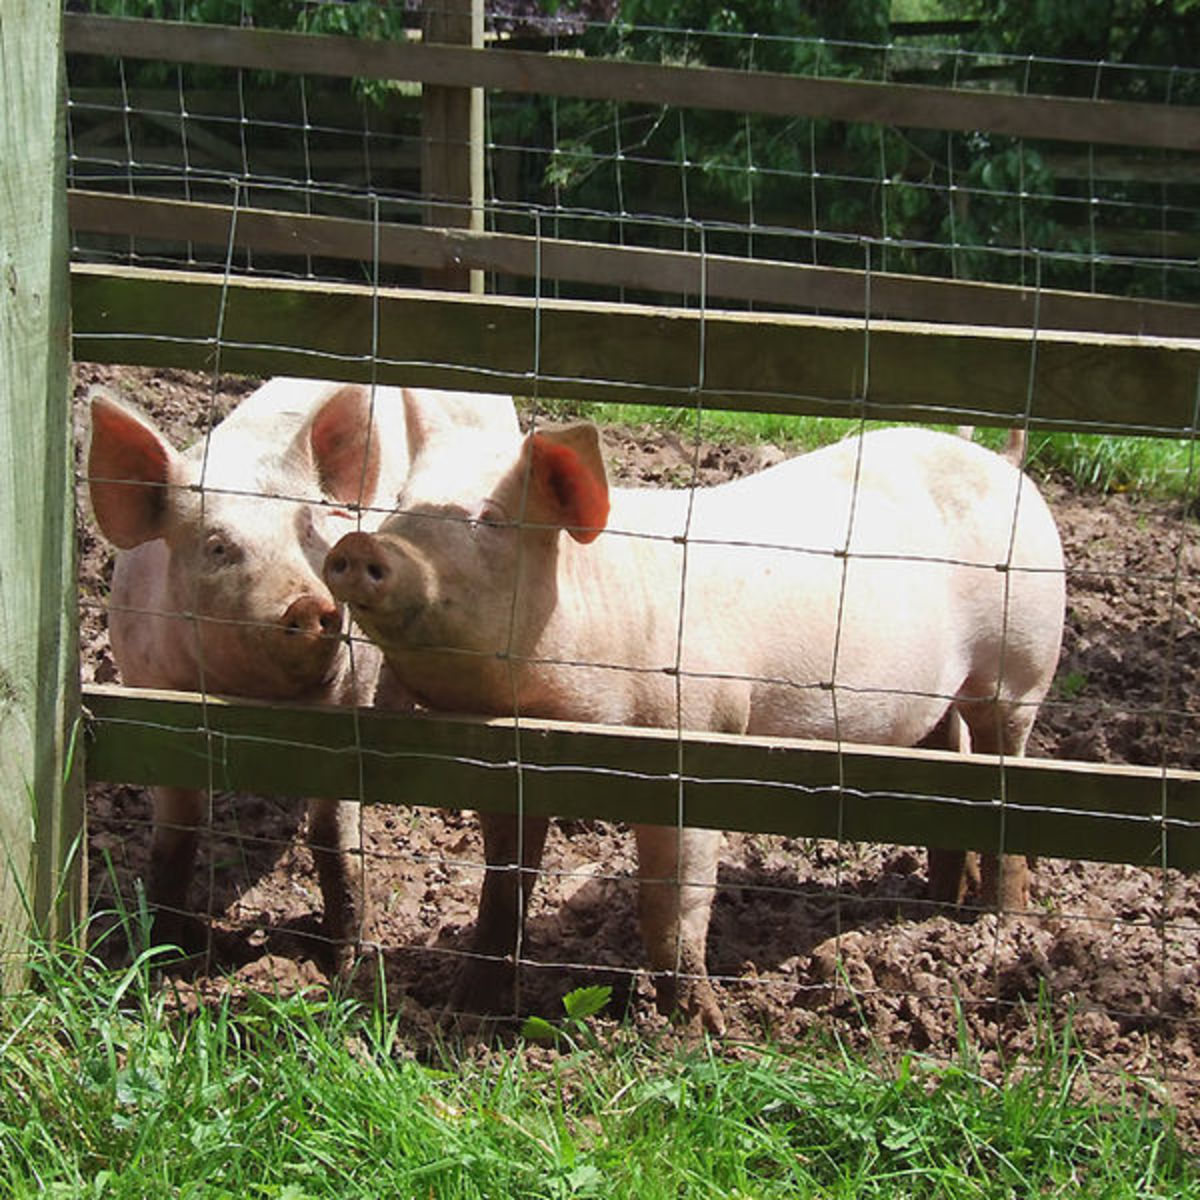 Young pigs with plenty of space and fresh air will require less vet care, have less fat, and be an overall superior quality.